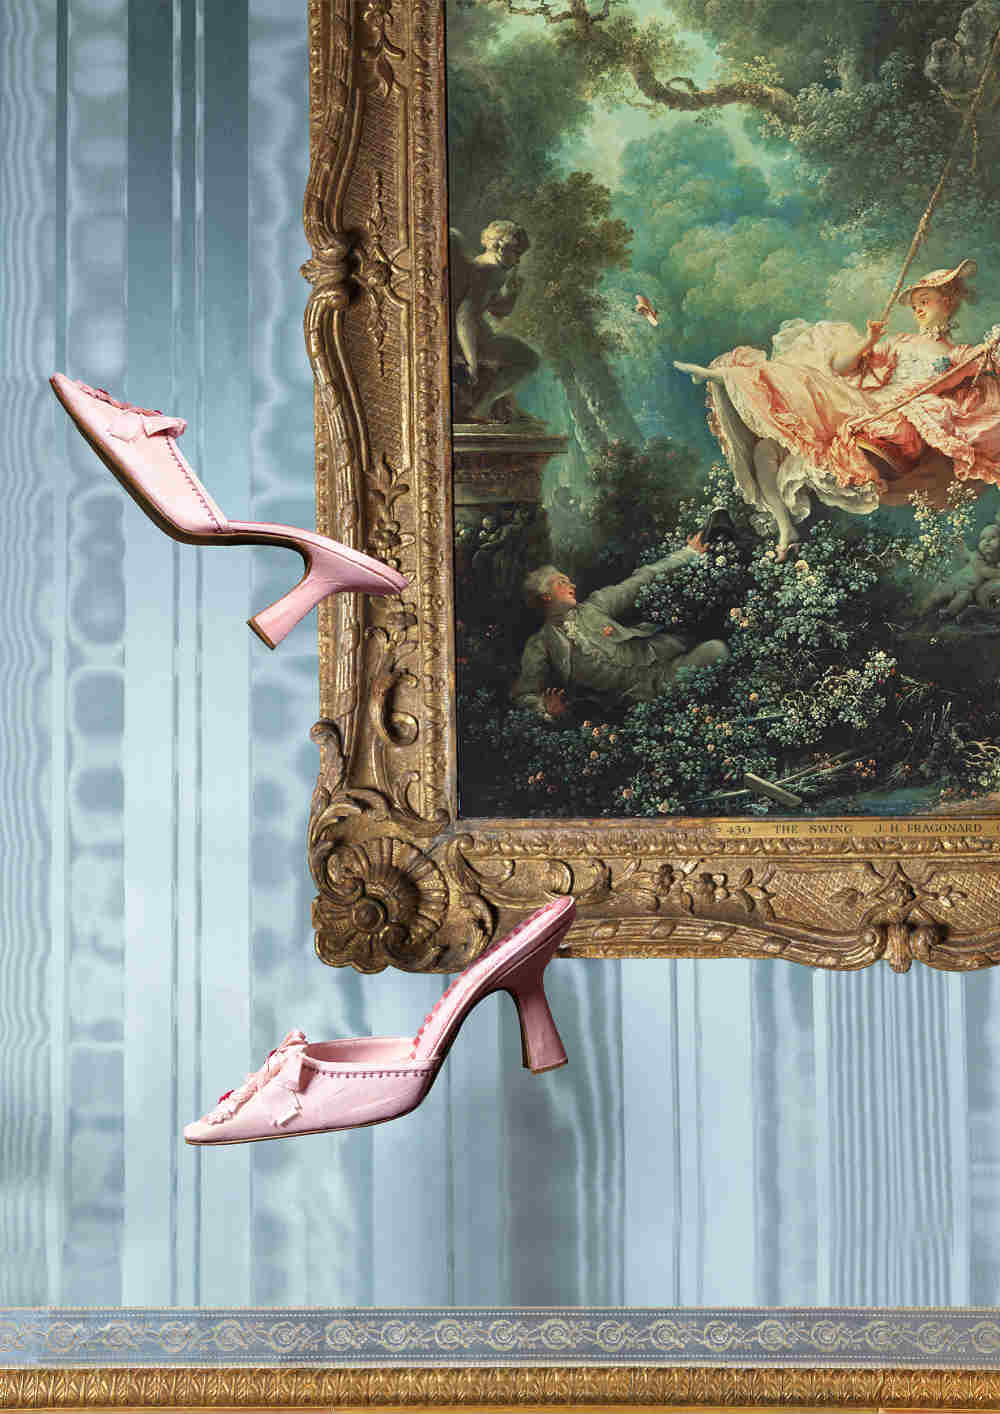 Manolo Blahnik Wallace Collection, Things to do in London June 2019